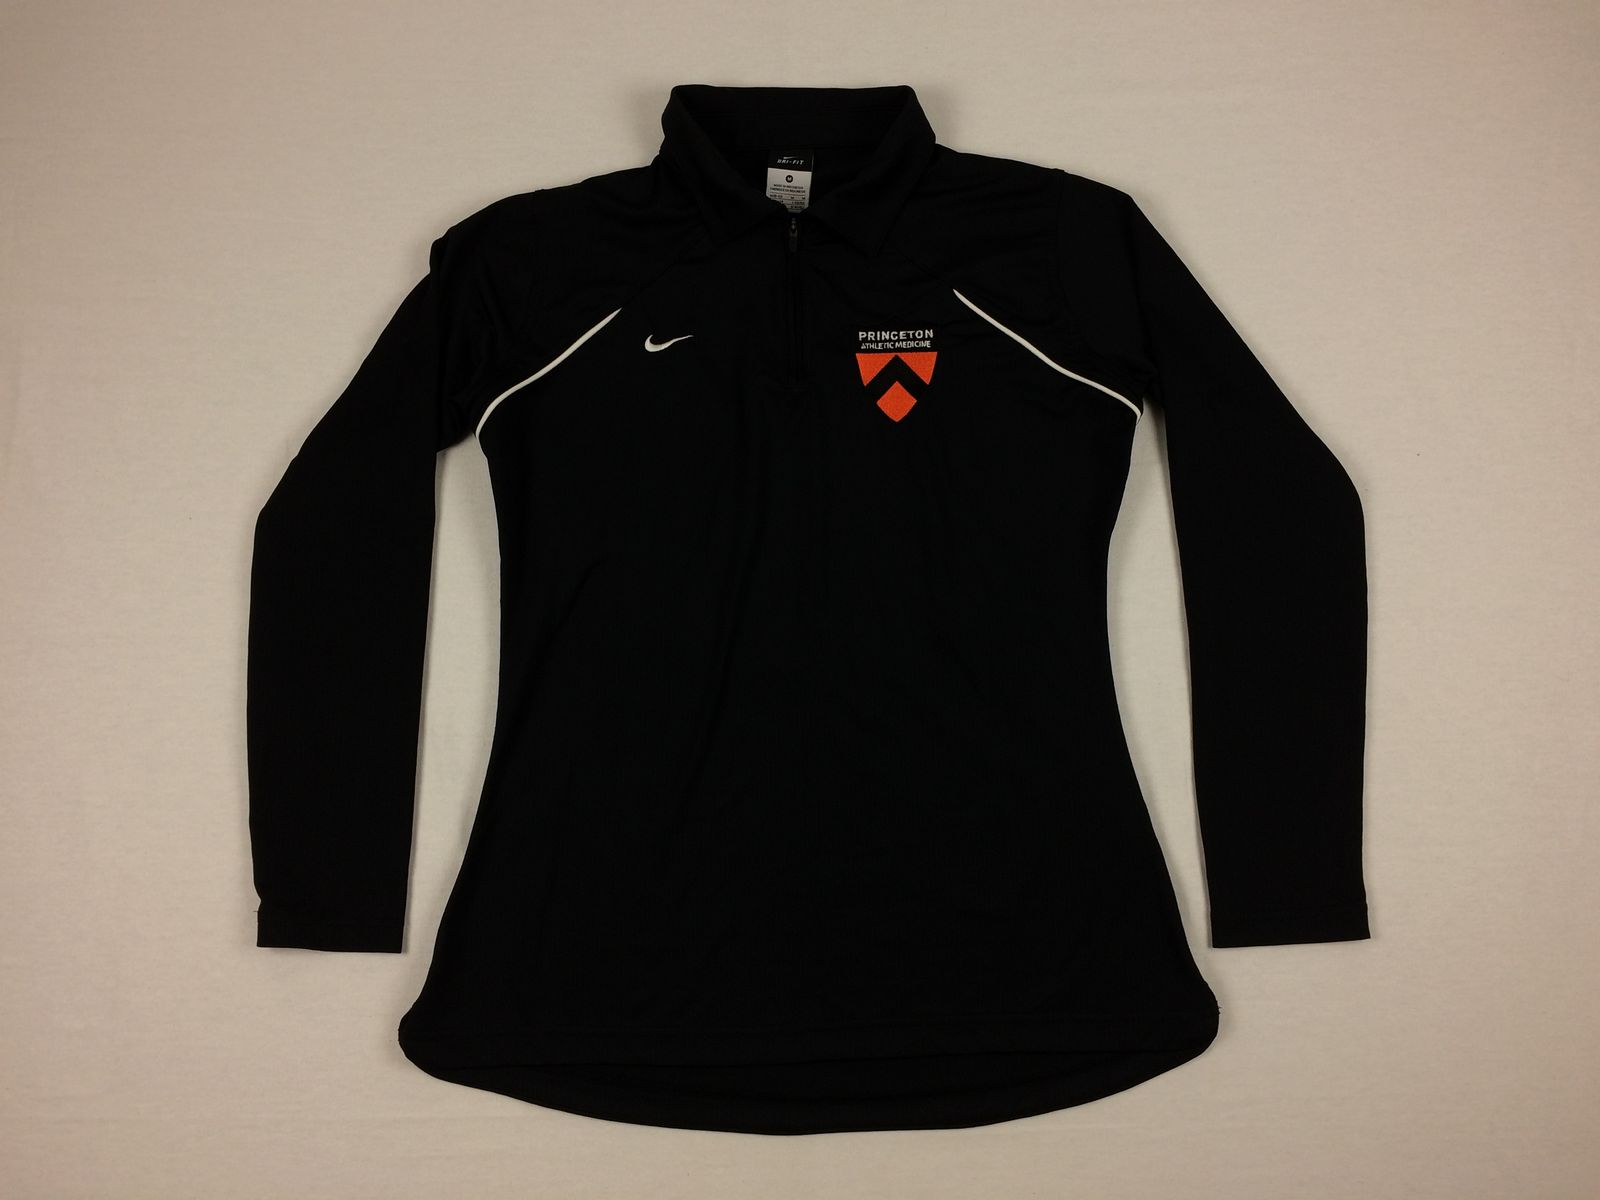 9b82f6bb4982 Details about Nike Princeton Tigers - Black Poly Pullover (M) - Used